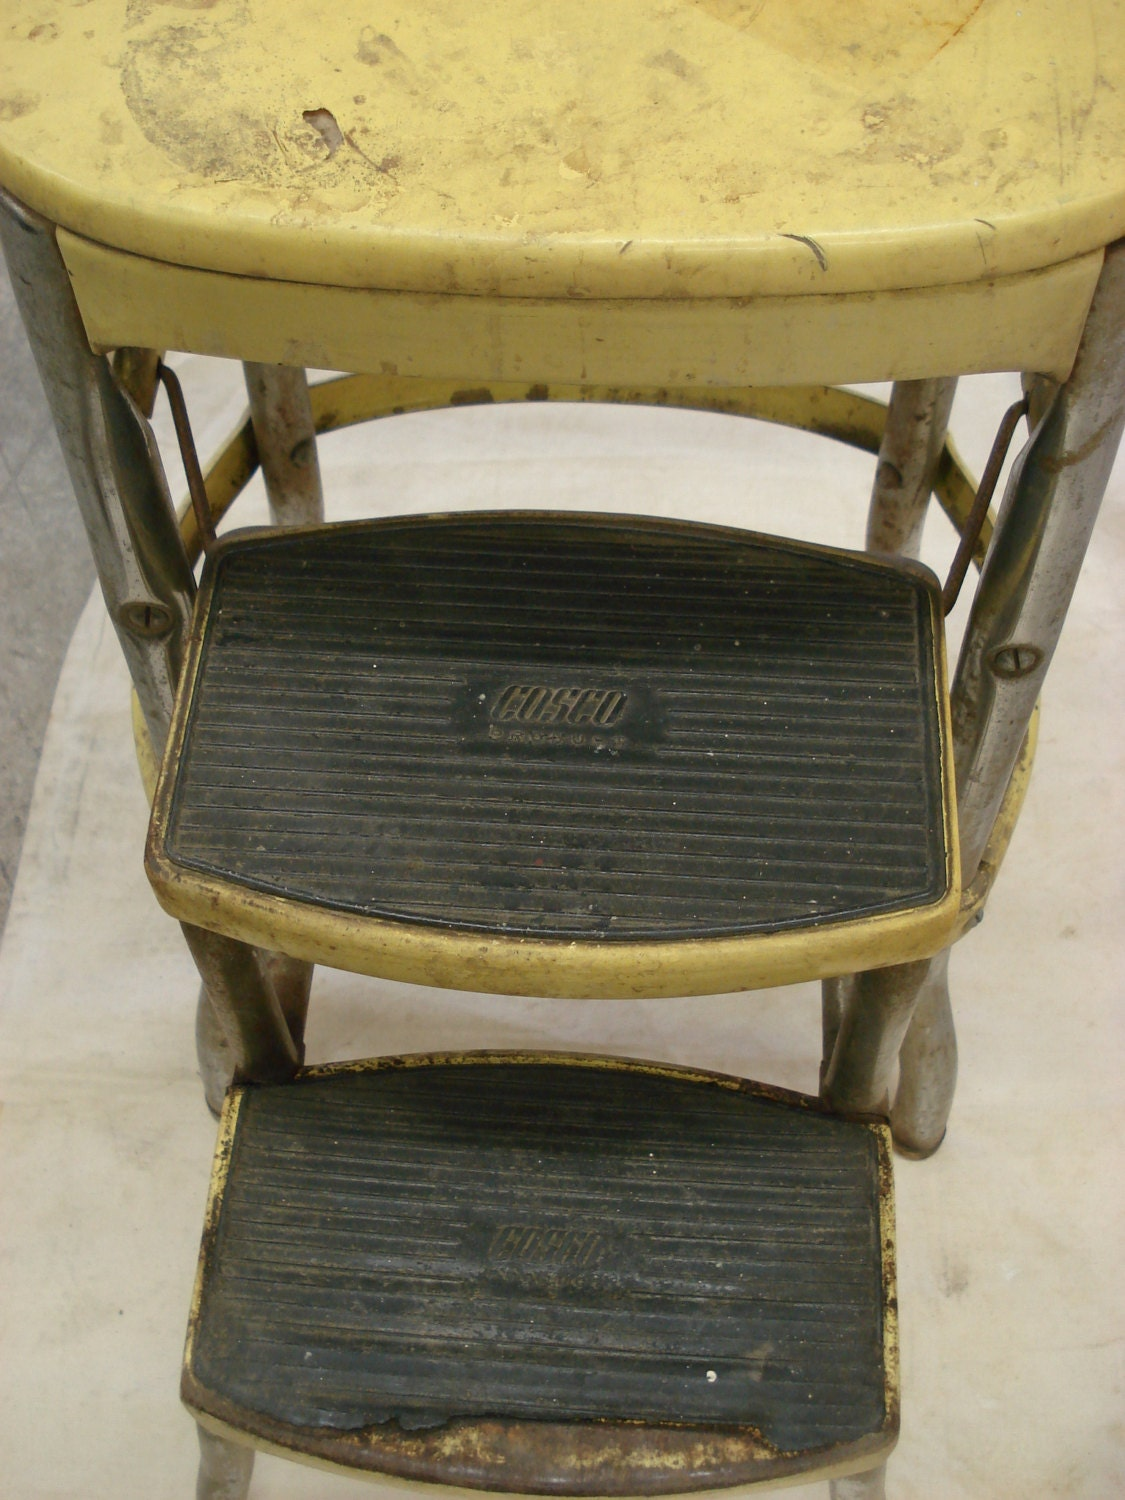 Vintage Metal Yellow Folding Costco Chair Step Stool Fold Out